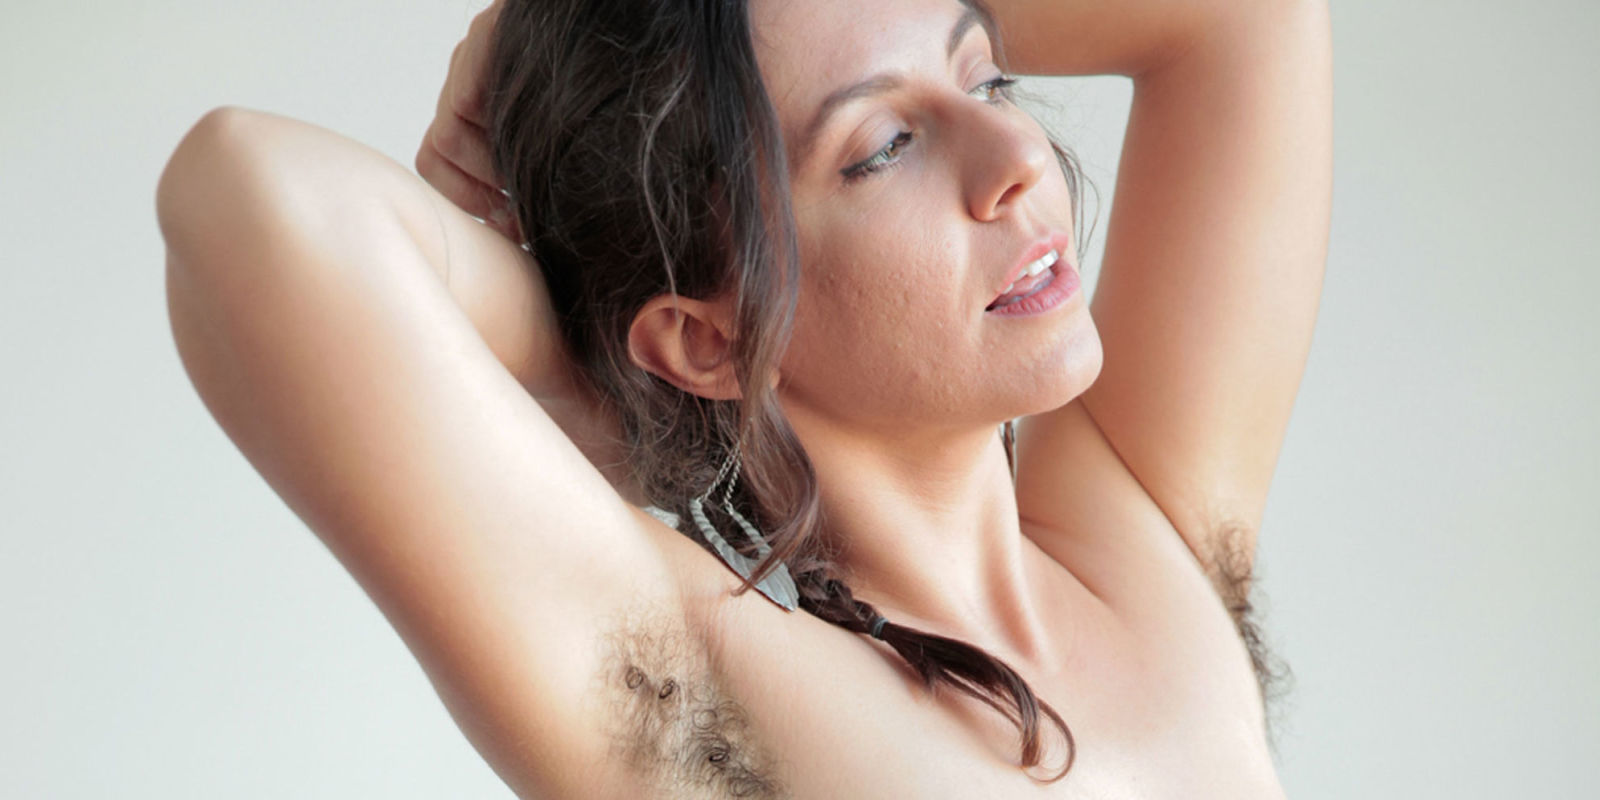 hairy female sex